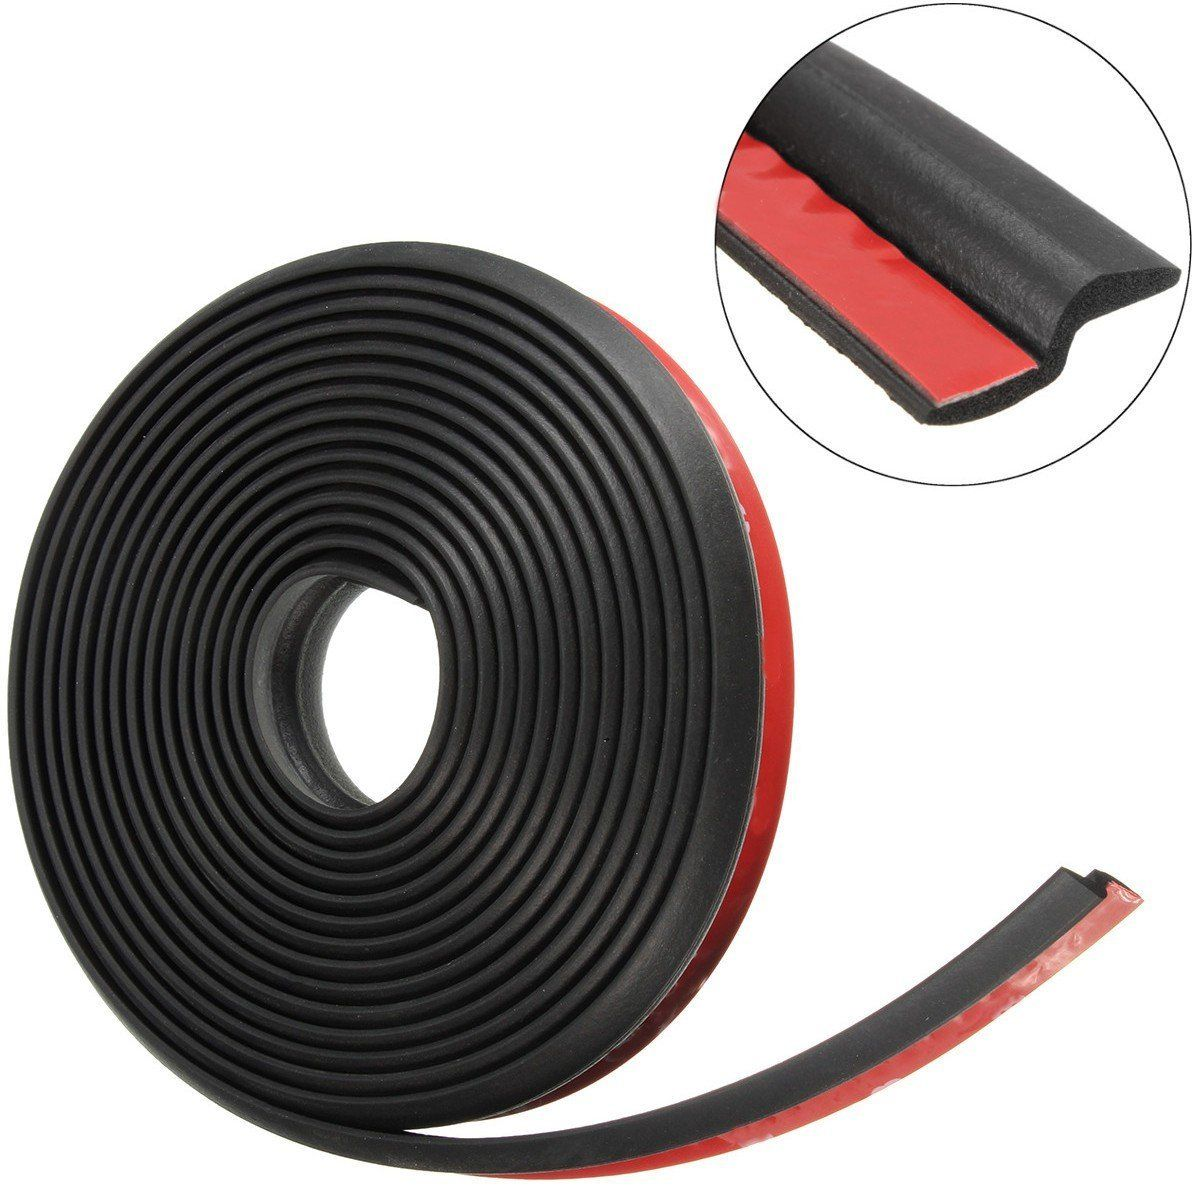 small resolution of  rubber profiles bulb trim seals automotive weather strips and seals door belt moldings pvc moldings wiring harness rubber grommets custom extruded